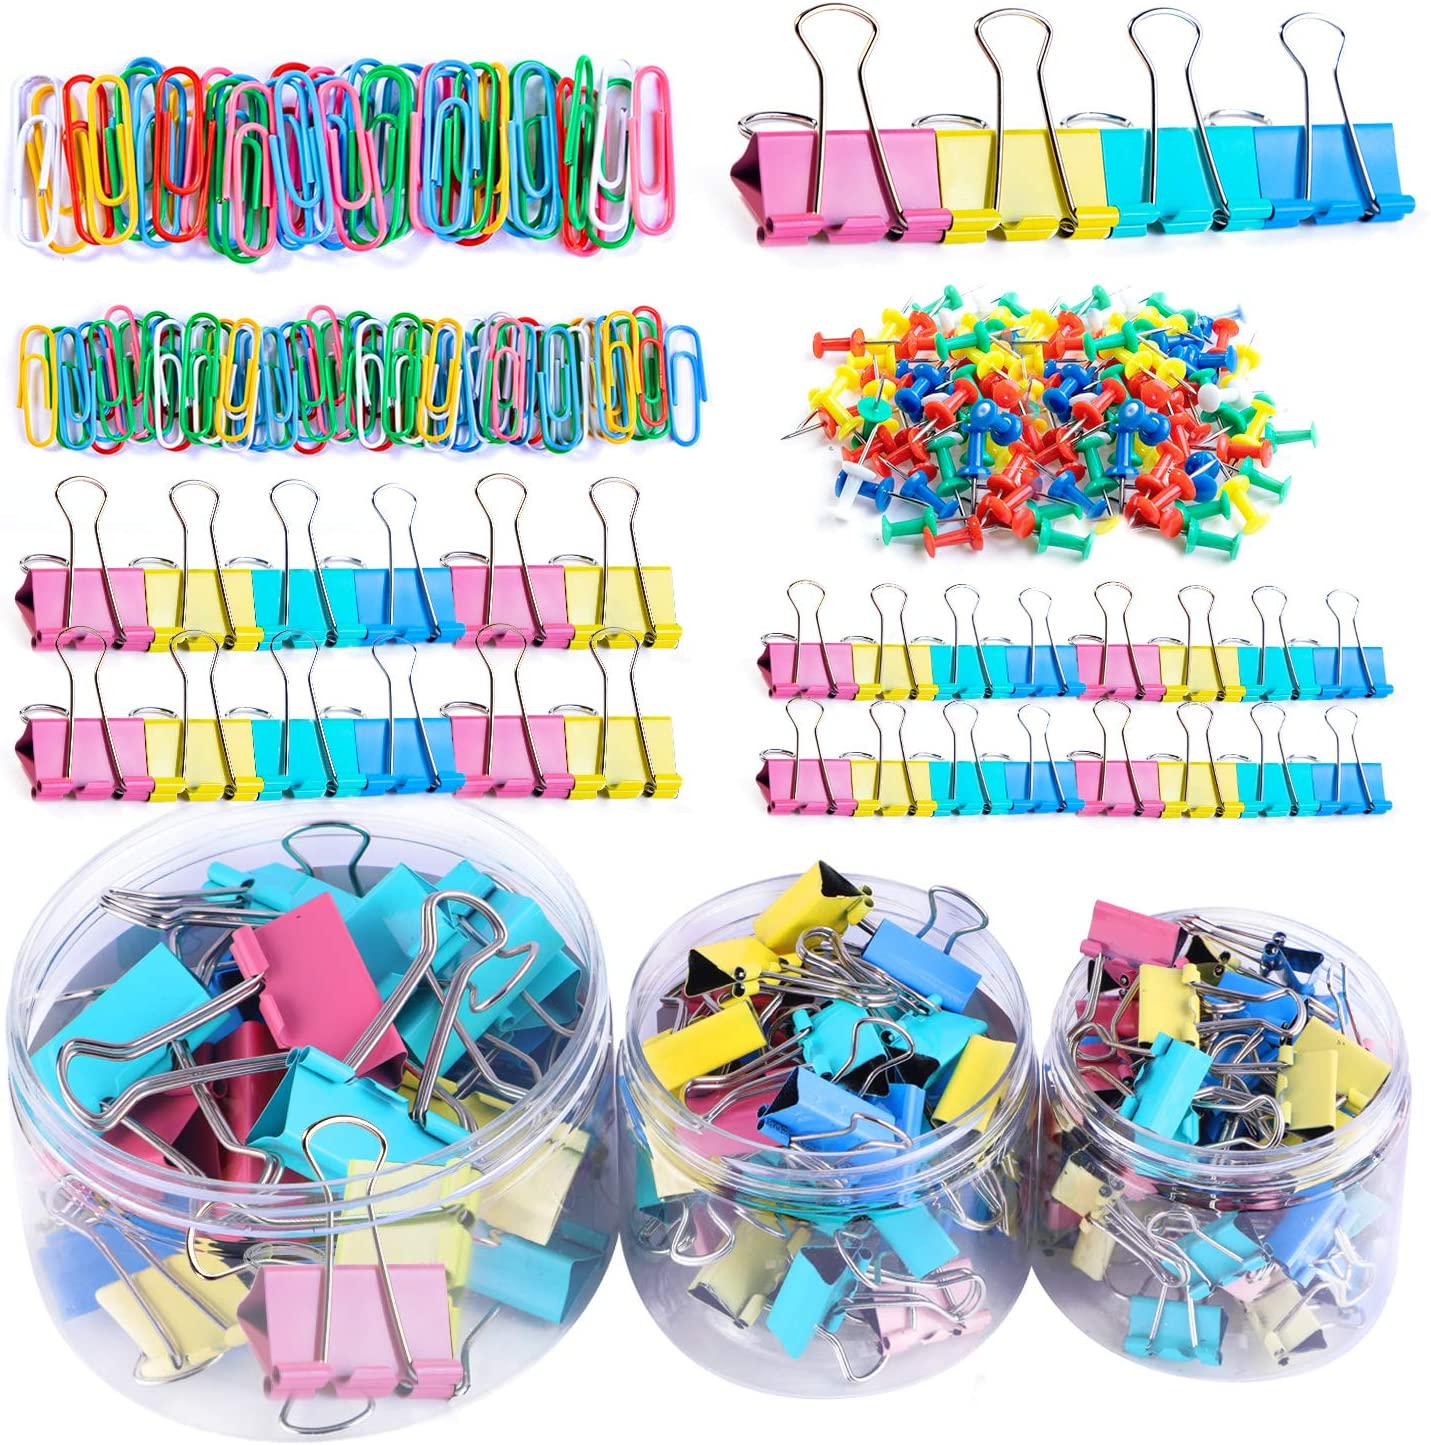 Assorted Office Clips Set with 124Pcs Binder Clips, 200Pcs Paper Clips 2 Sizes, 80Pcs Push Pins